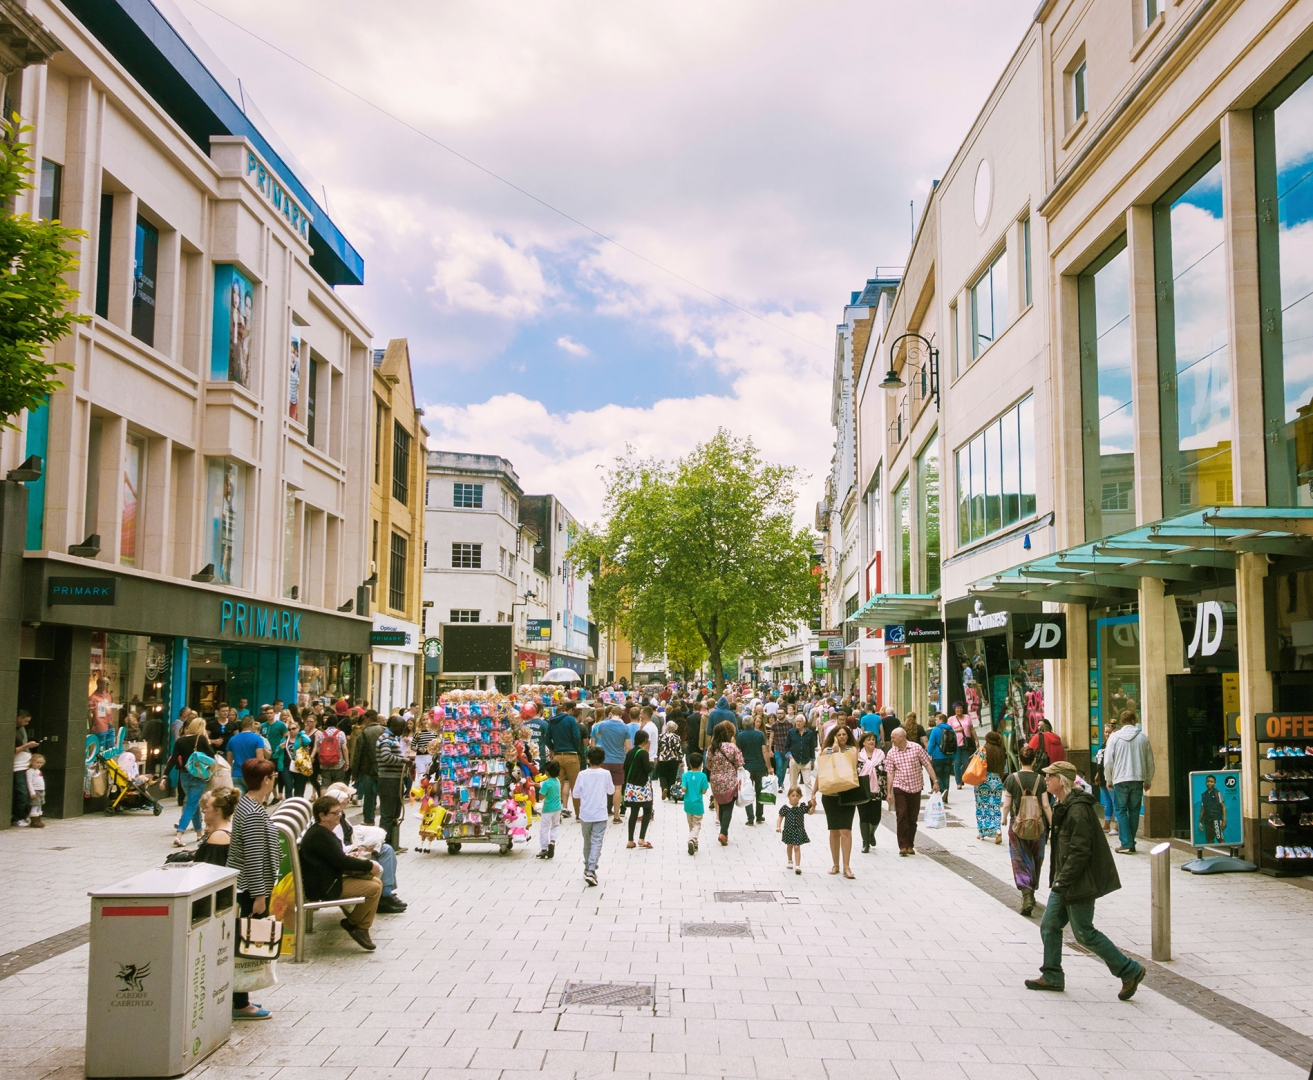 wide angle view of a city street with filled with pedestrians visiting retailers